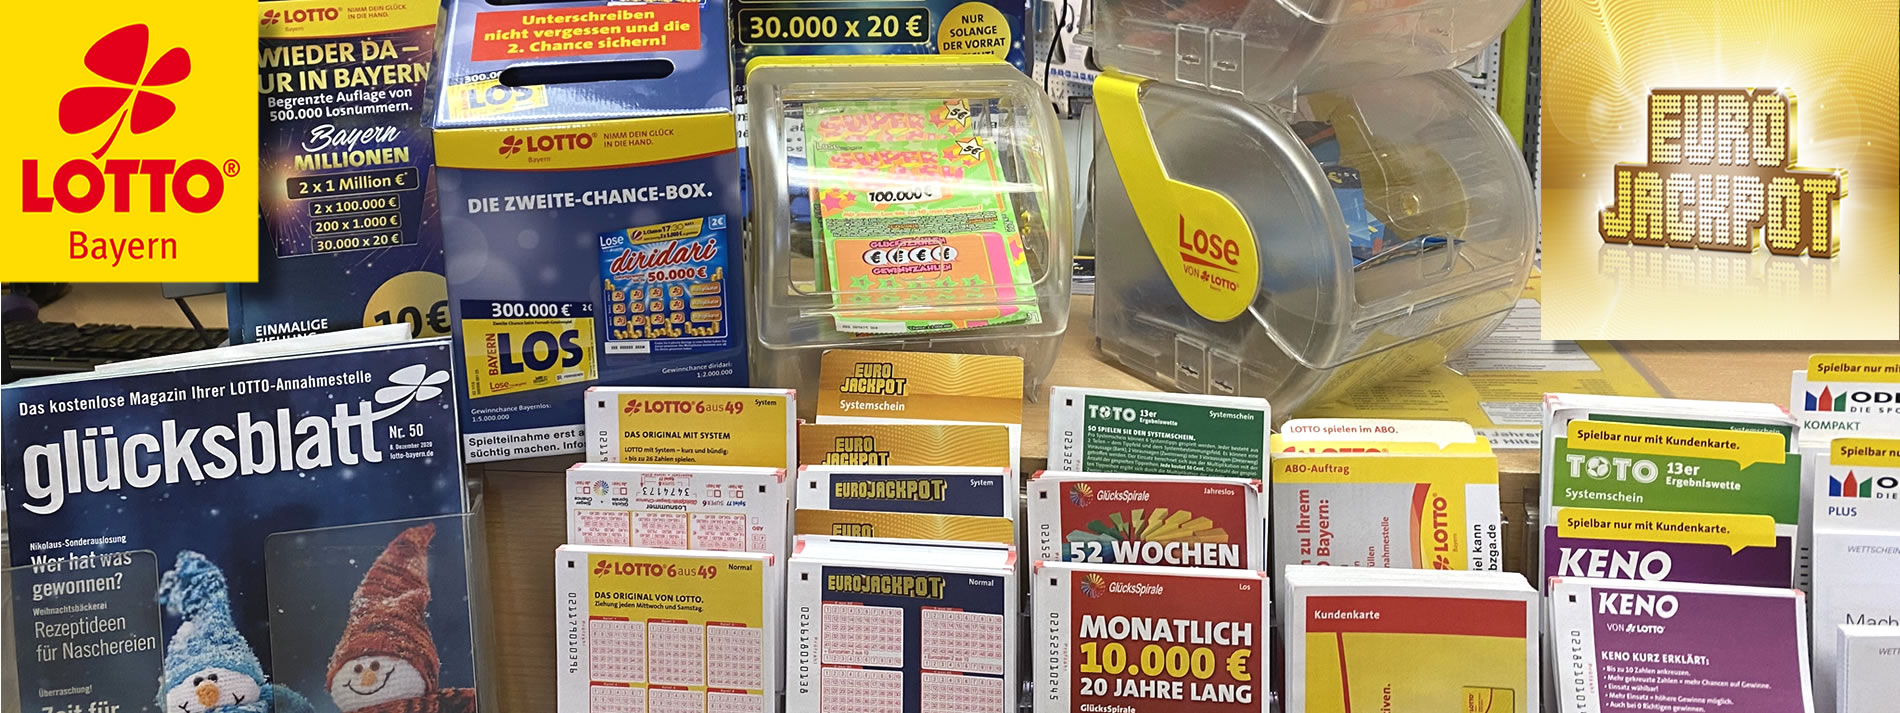 Lotto Poecking bei Starnberg